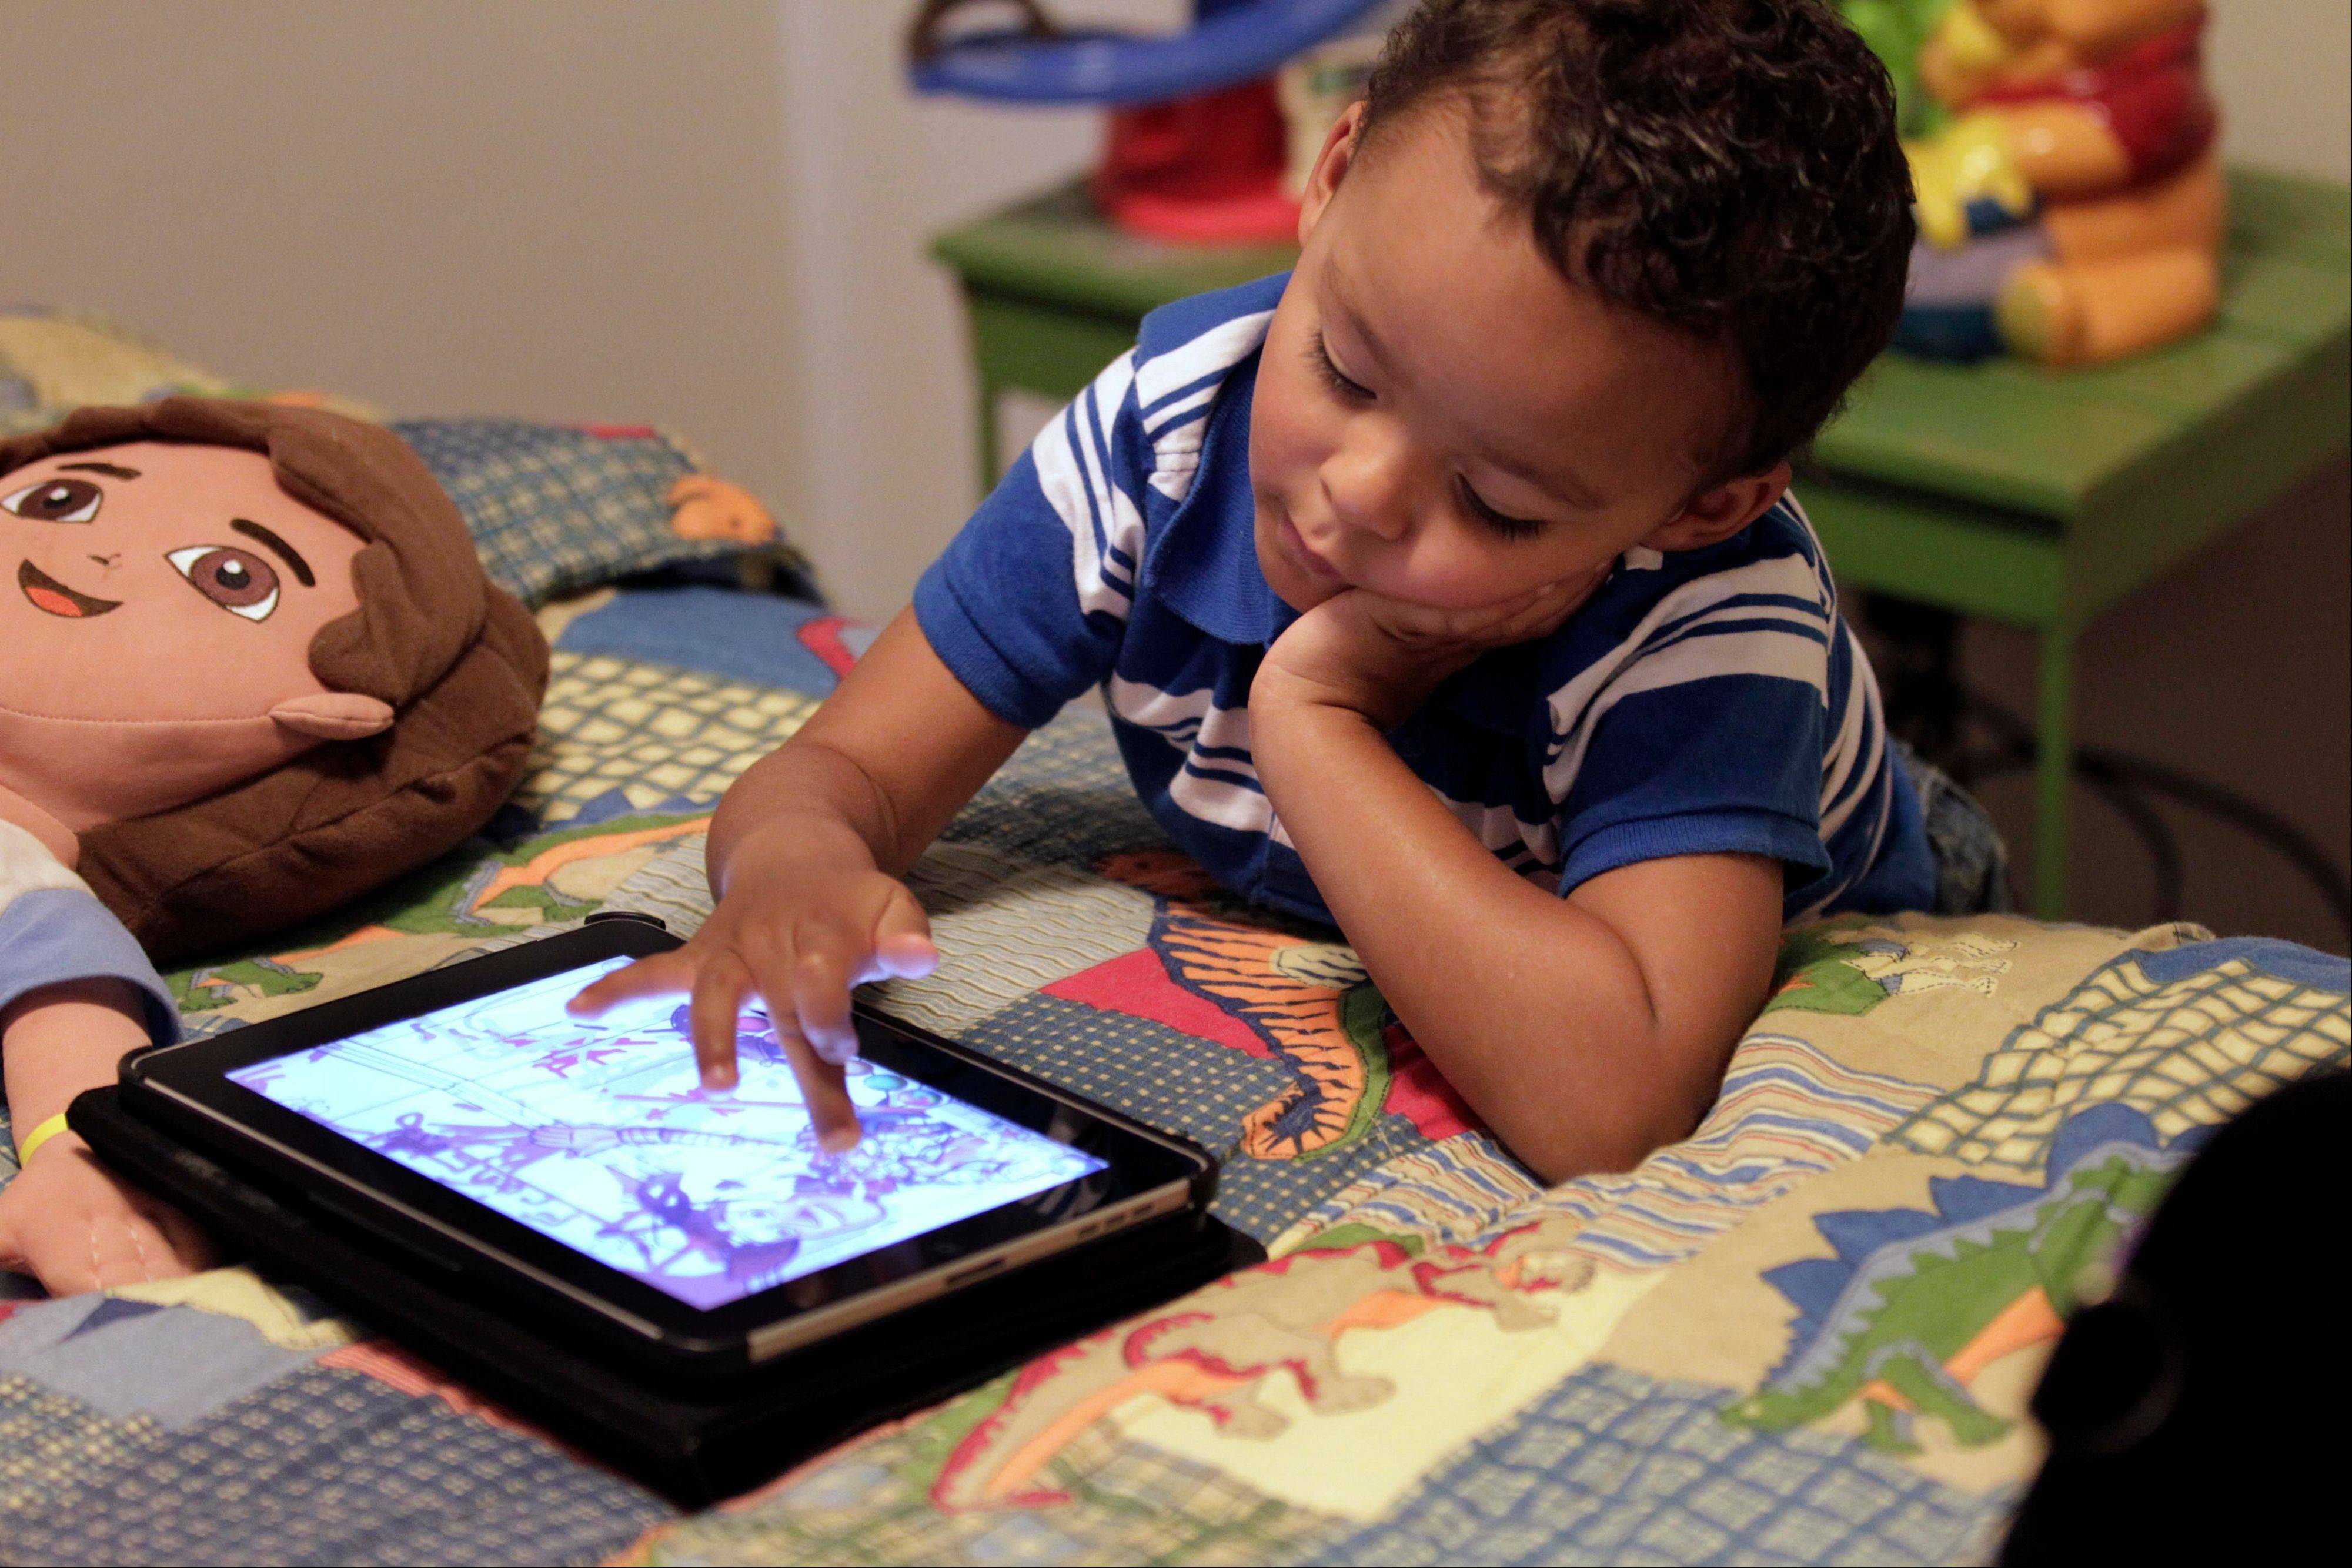 Frankie Thevenot, 3, plays with an iPad in his bedroom at his home in Metairie, La. The Campaign for a Commercial-Free Childhood, a Boston-based group, is urging federal investigators to examine the marketing practices of Fisher-Price's and Open Solution's mobile apps. It's the campaign's first complaint against the mobile app industry as part of its broader push to hold accountable businesses that market technology to very young children and their parents.